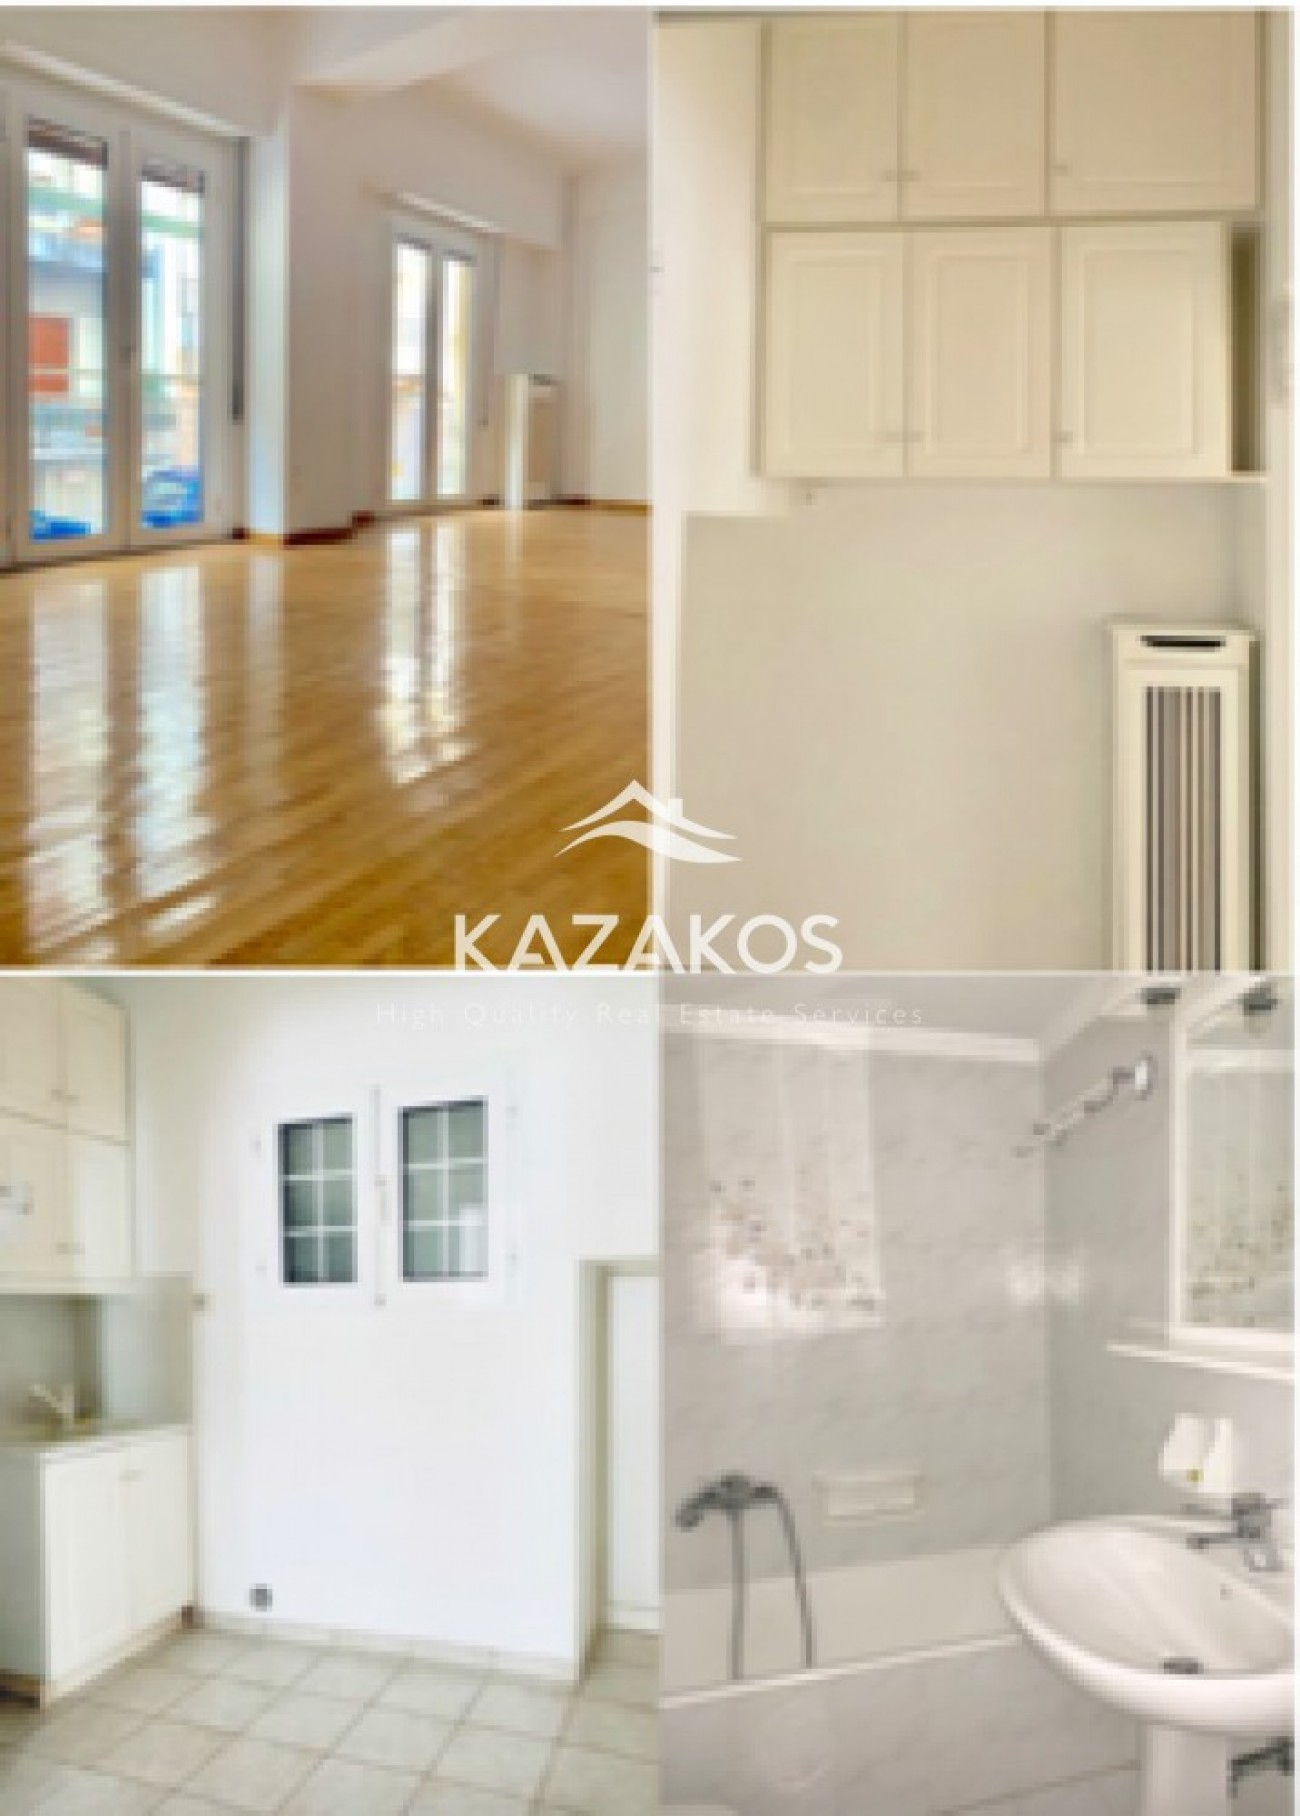 Studio for Sale in Pagkrati, Athens City Center, Greece